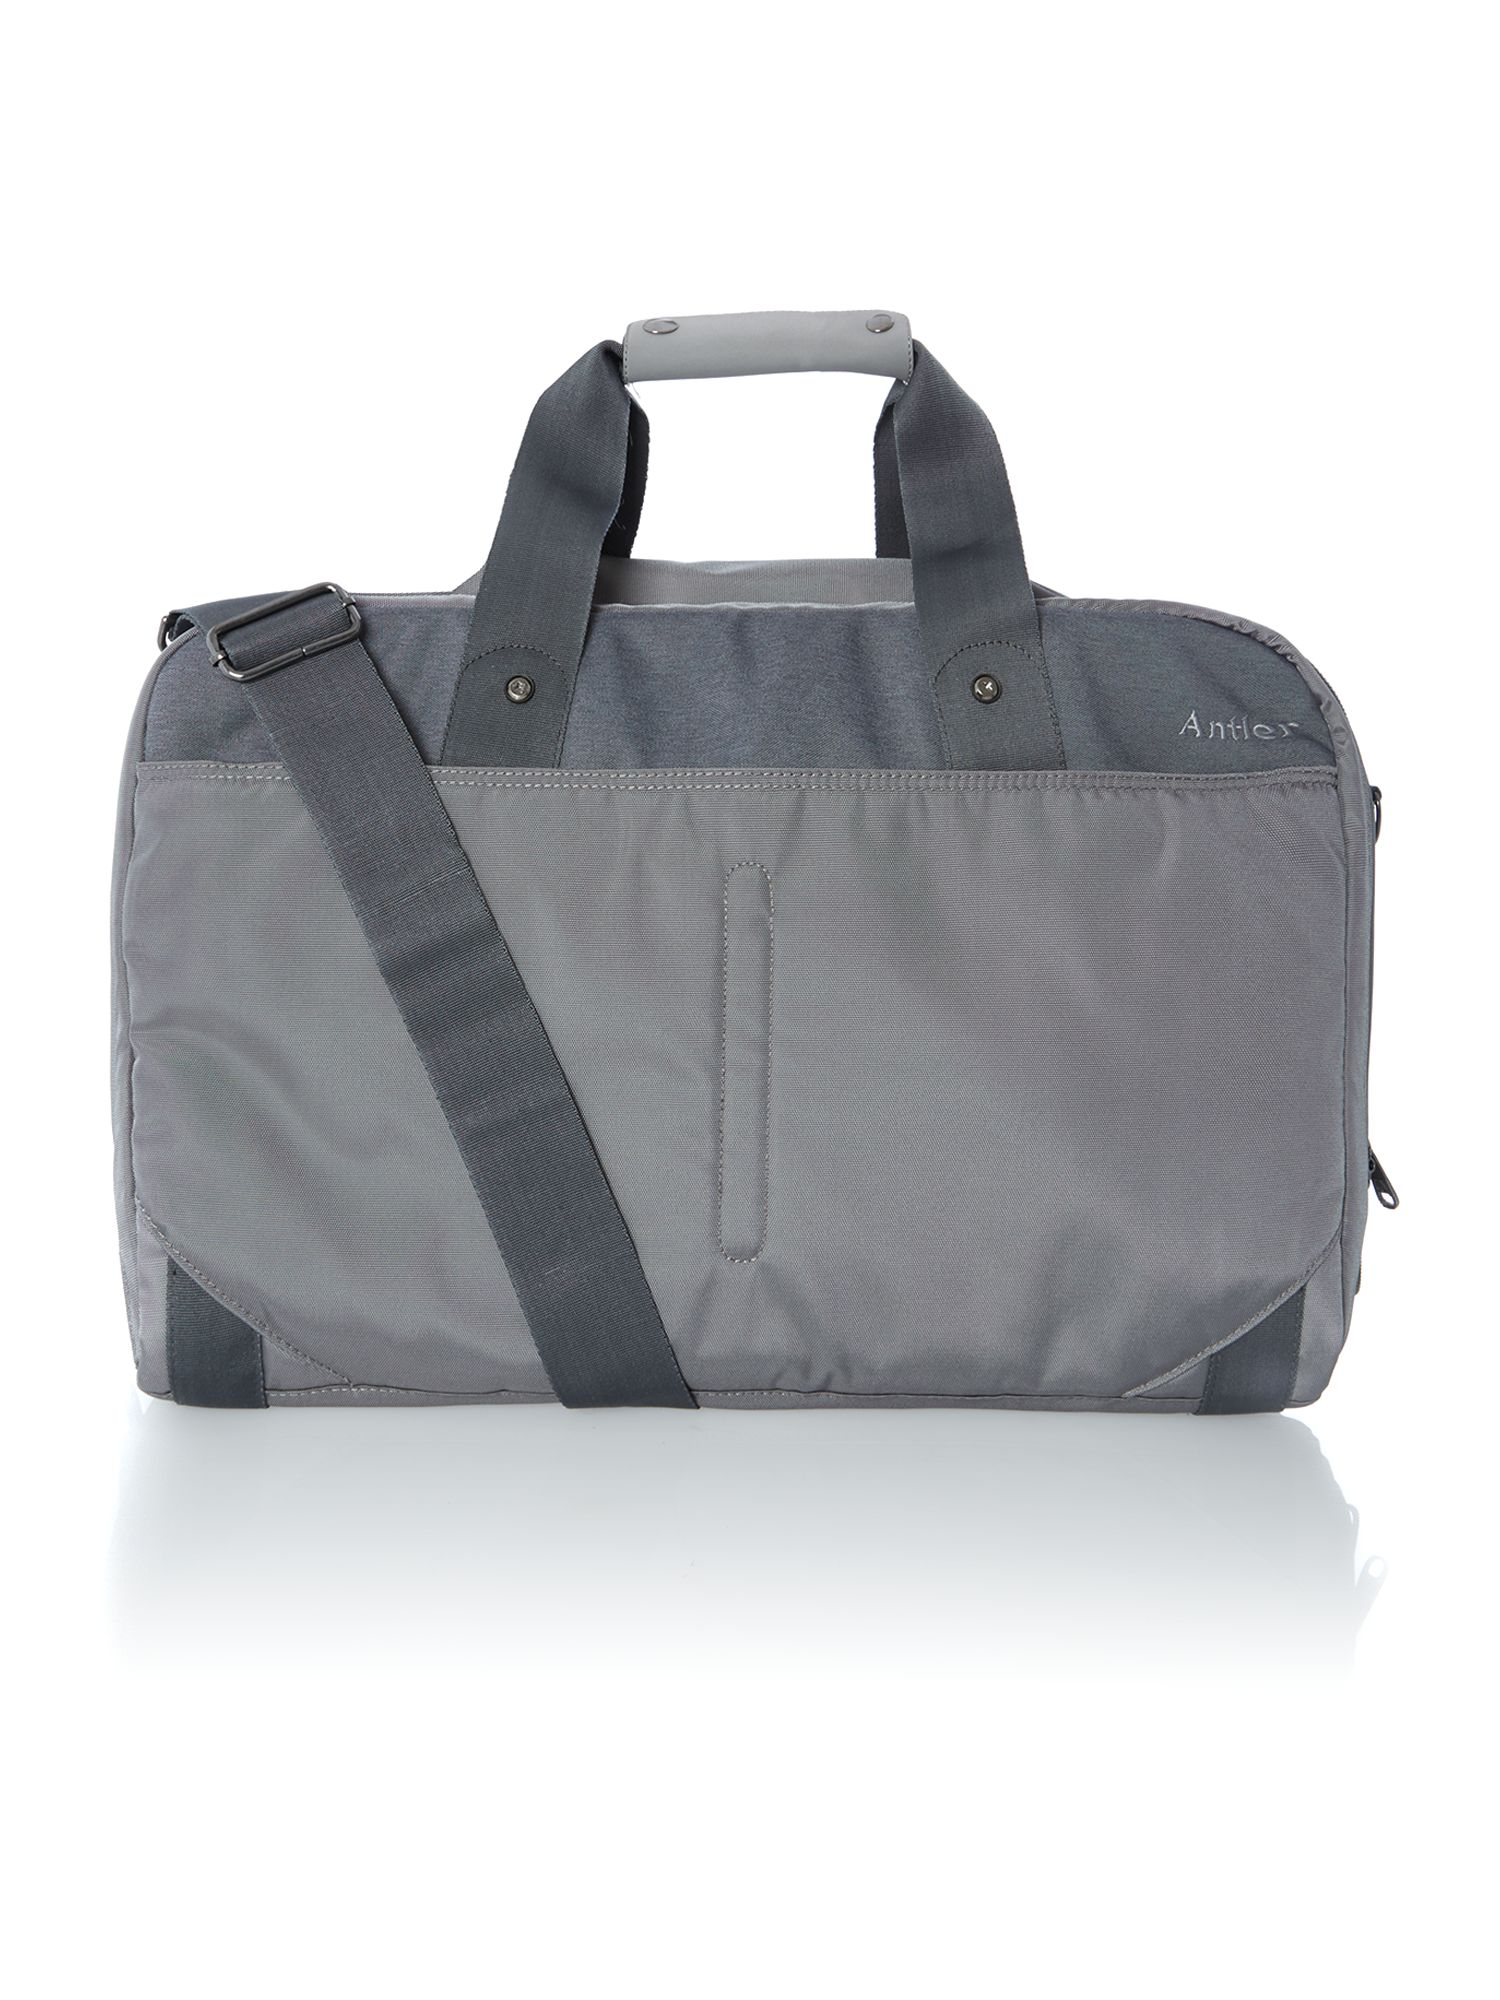 Nix light grey luggage range